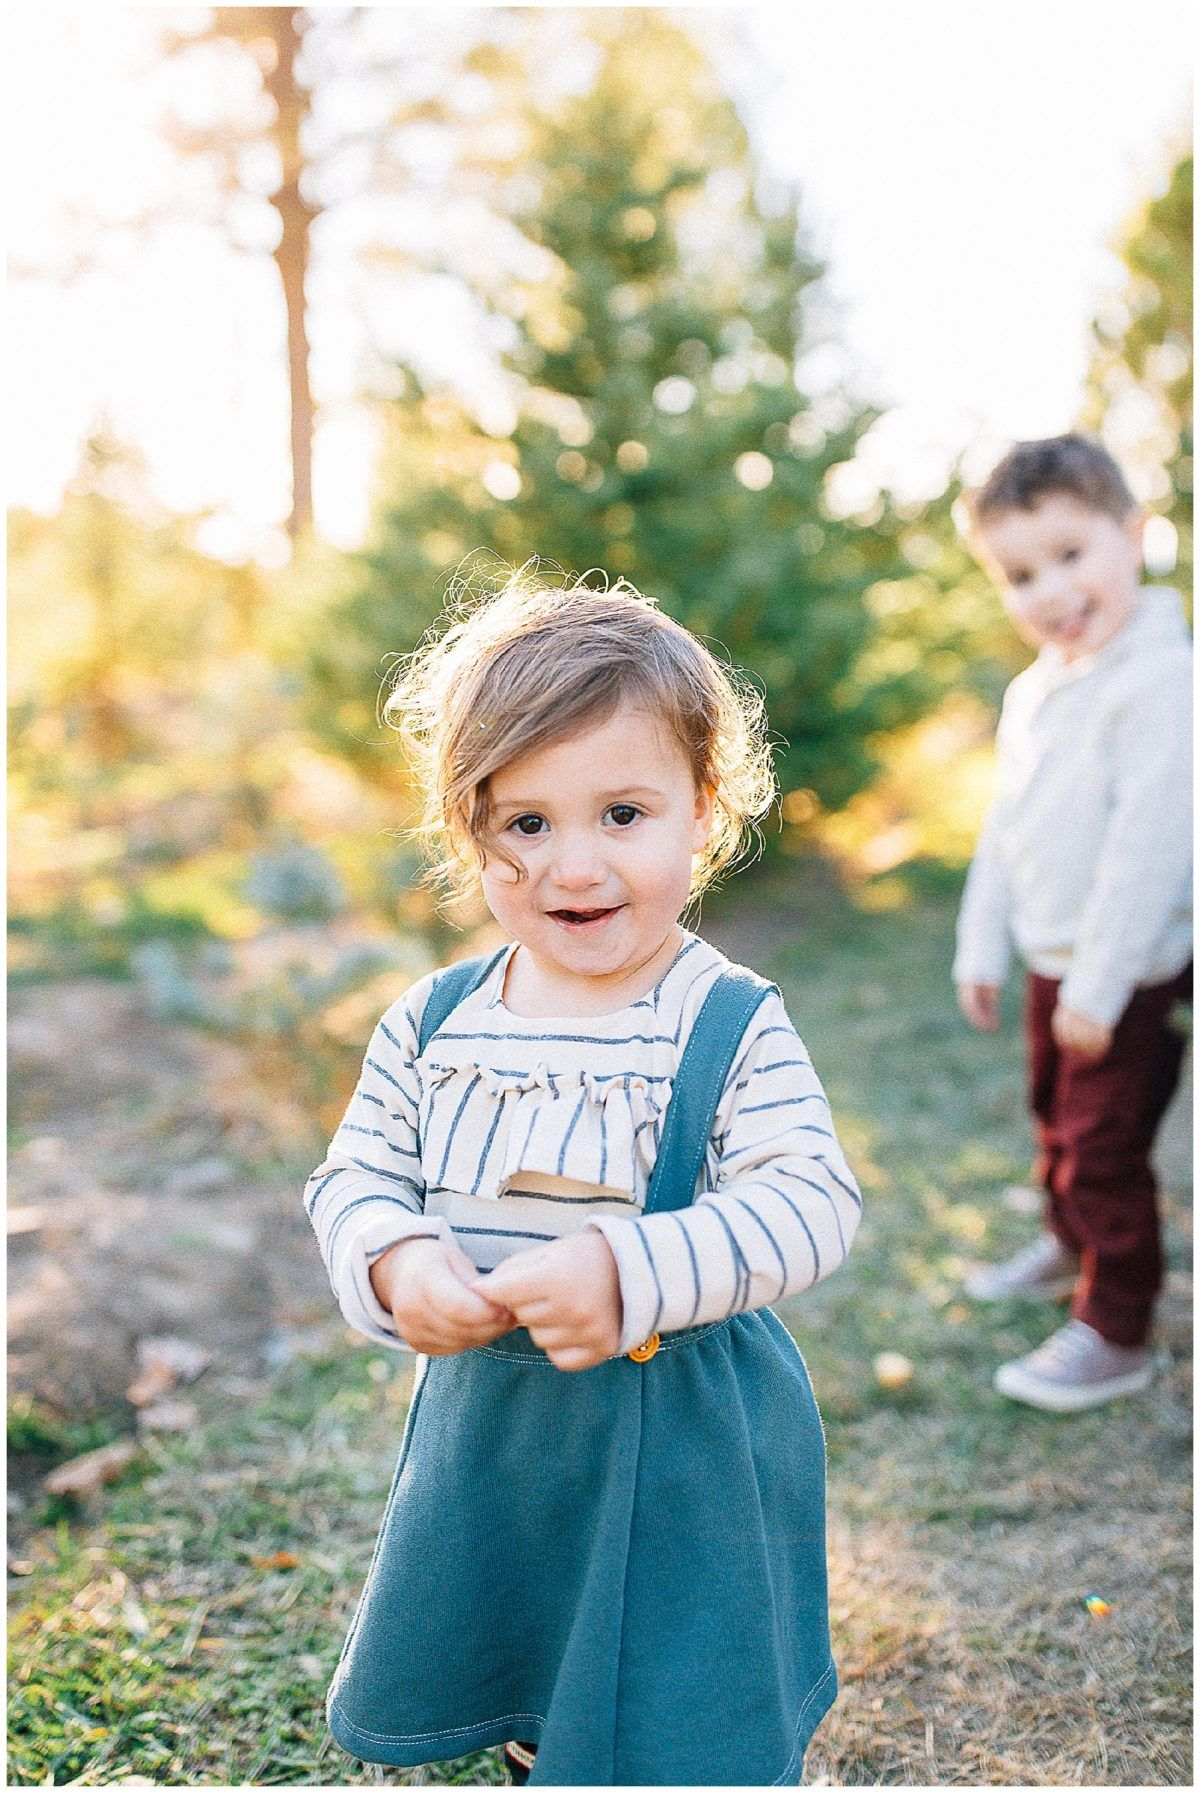 Baird Tree Farm Pictures Utah Family Photographer Truly Photography Tree Farm Pictures Elegant Christmas Trees Christmas Tree Farm